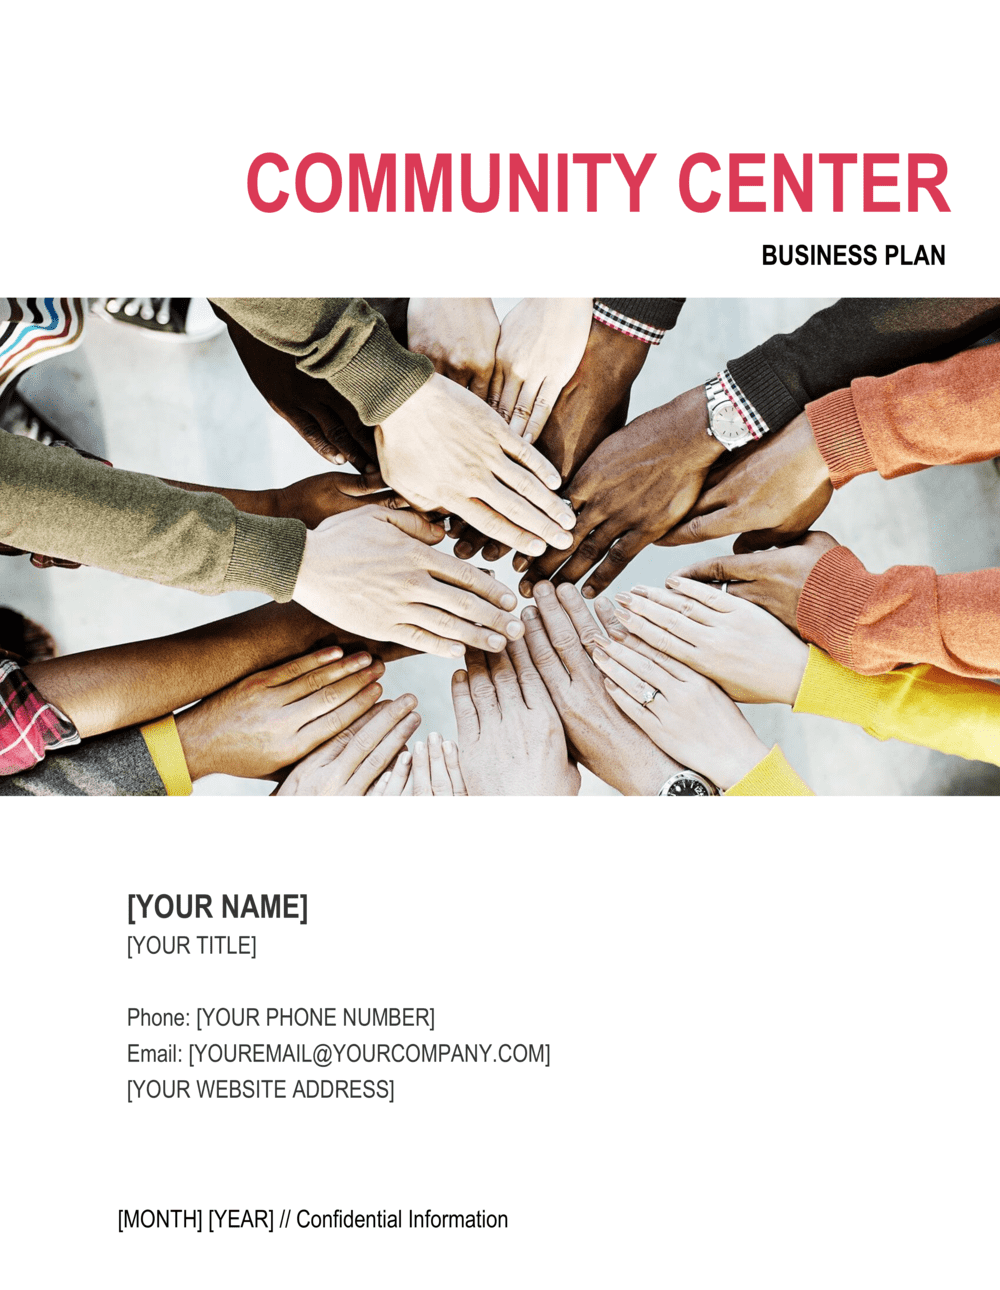 Business-in-a-Box's Community Center Business Plan Template